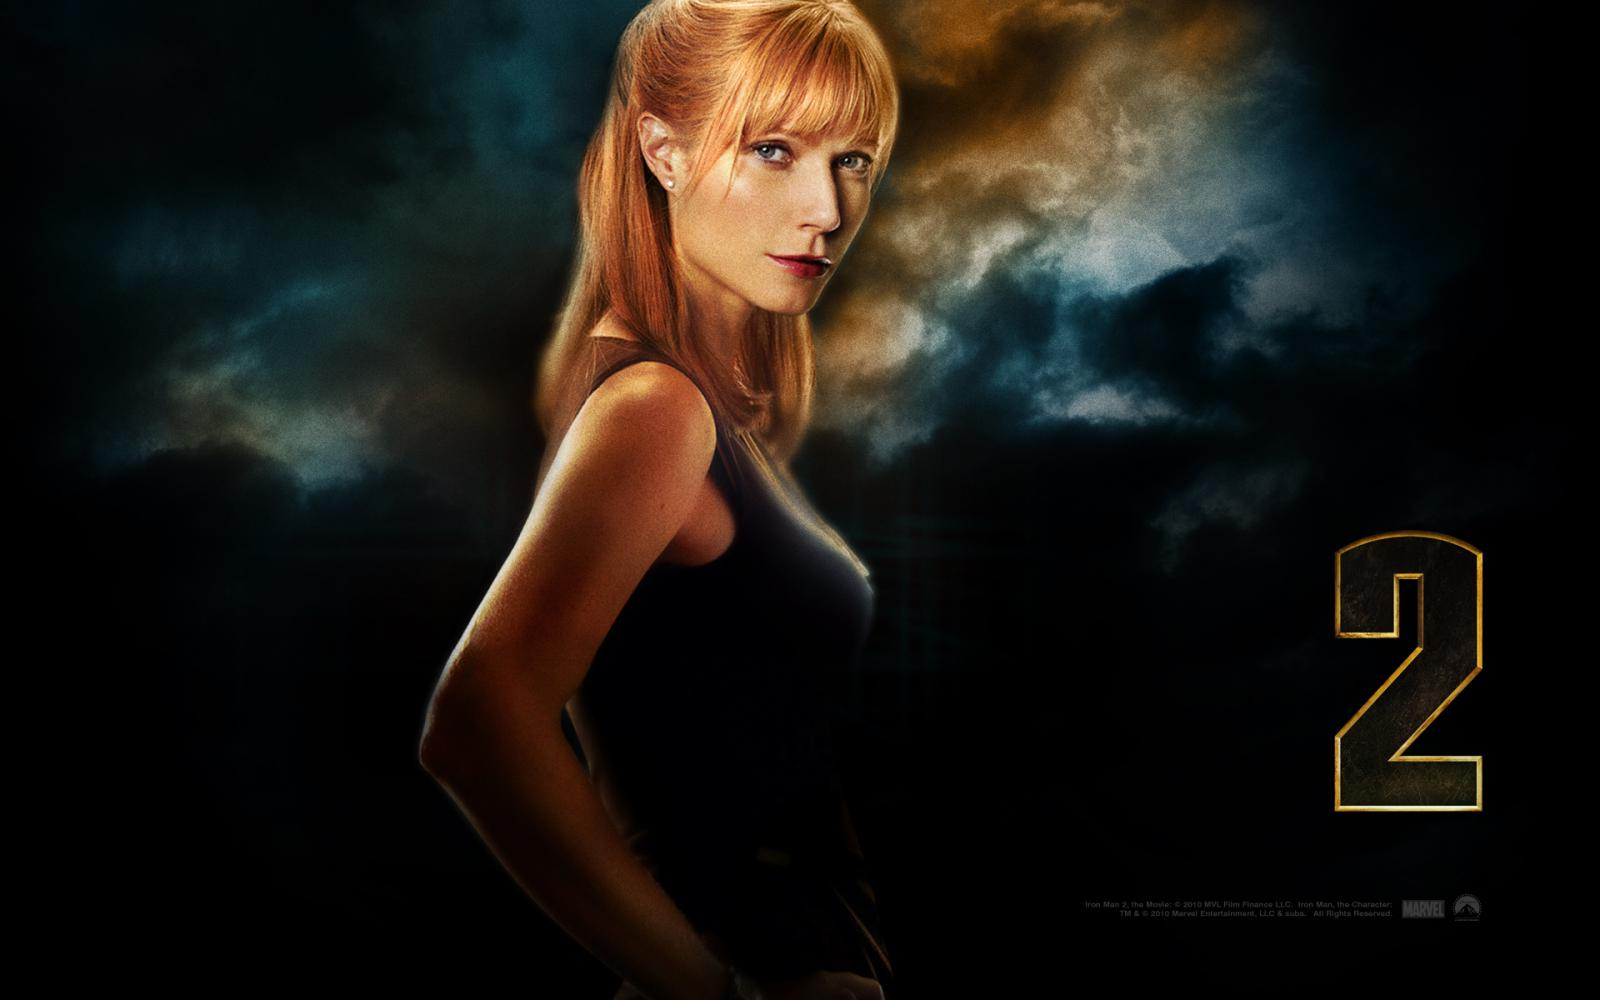 Wallpaper Iron Man 2 Pepper Potts Iron Man